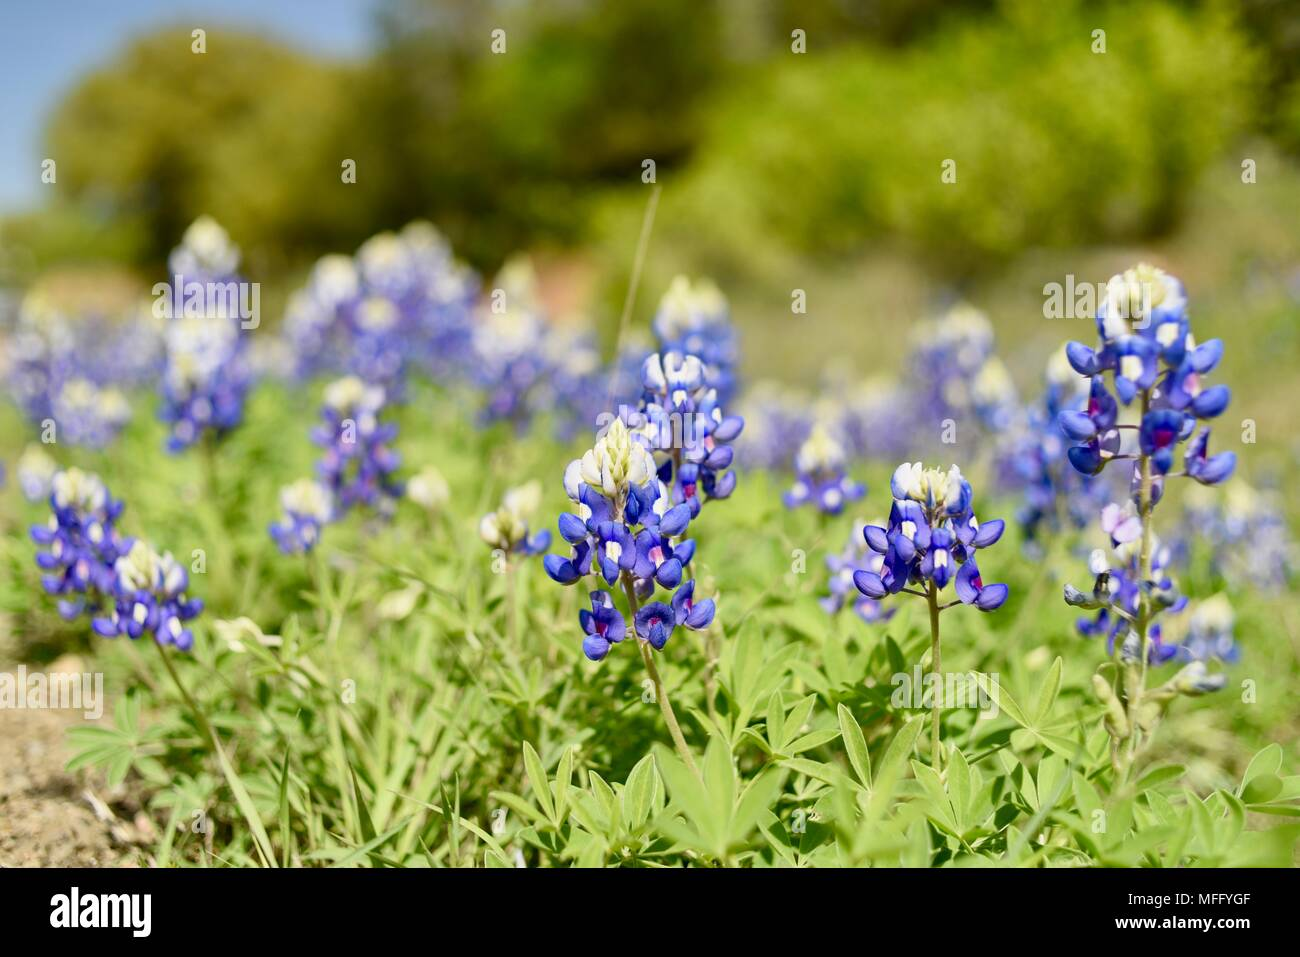 Spring blooming of texas bluebonnets state flower of texas growing spring blooming of texas bluebonnets state flower of texas growing wild in texas hill country fredericksburg texas usa mightylinksfo